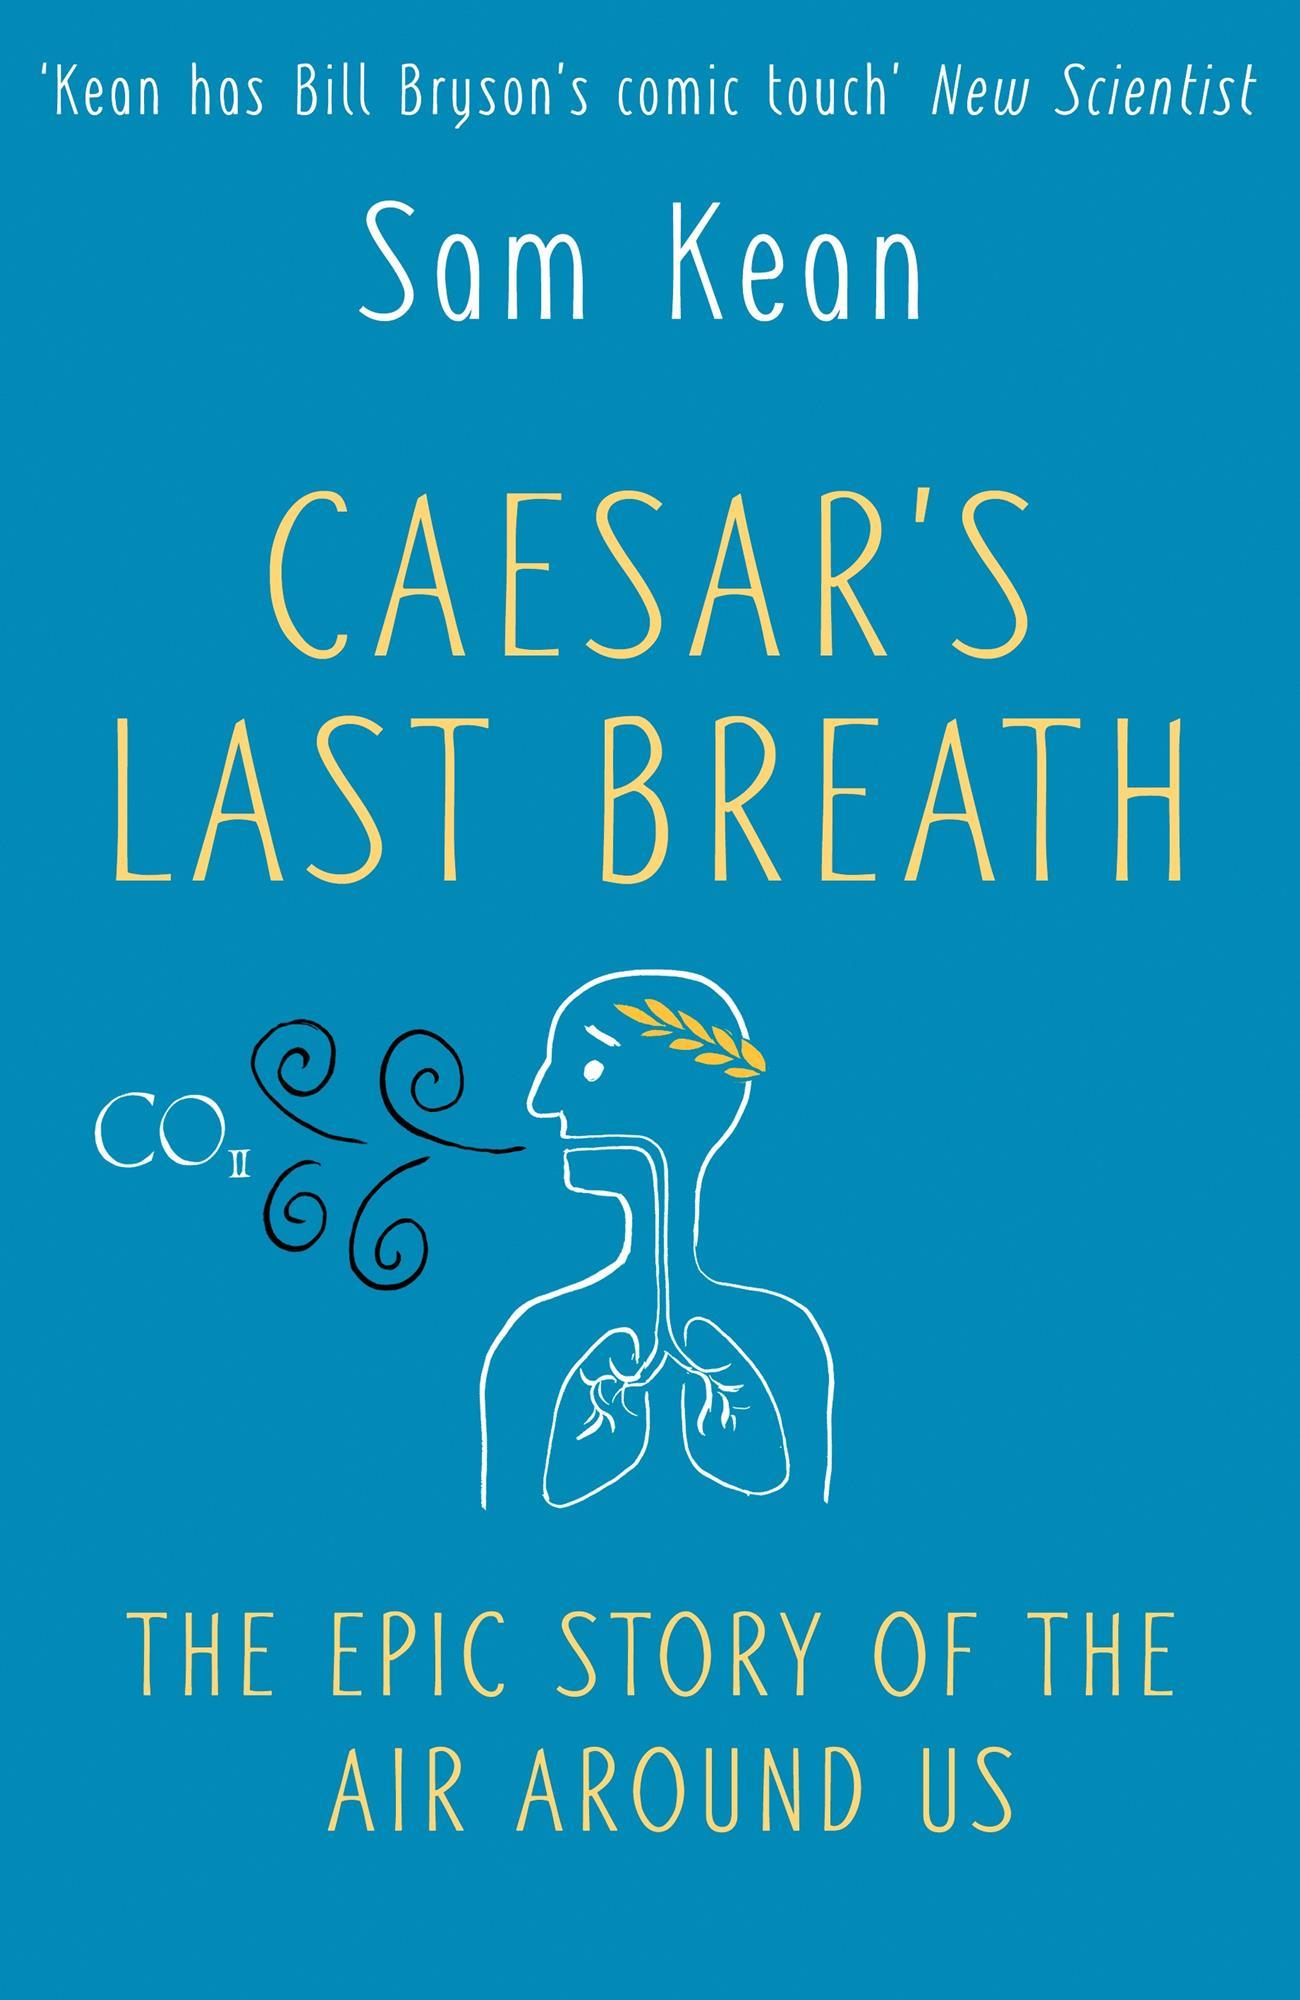 sam-kean-caesars-last-breath.jpg